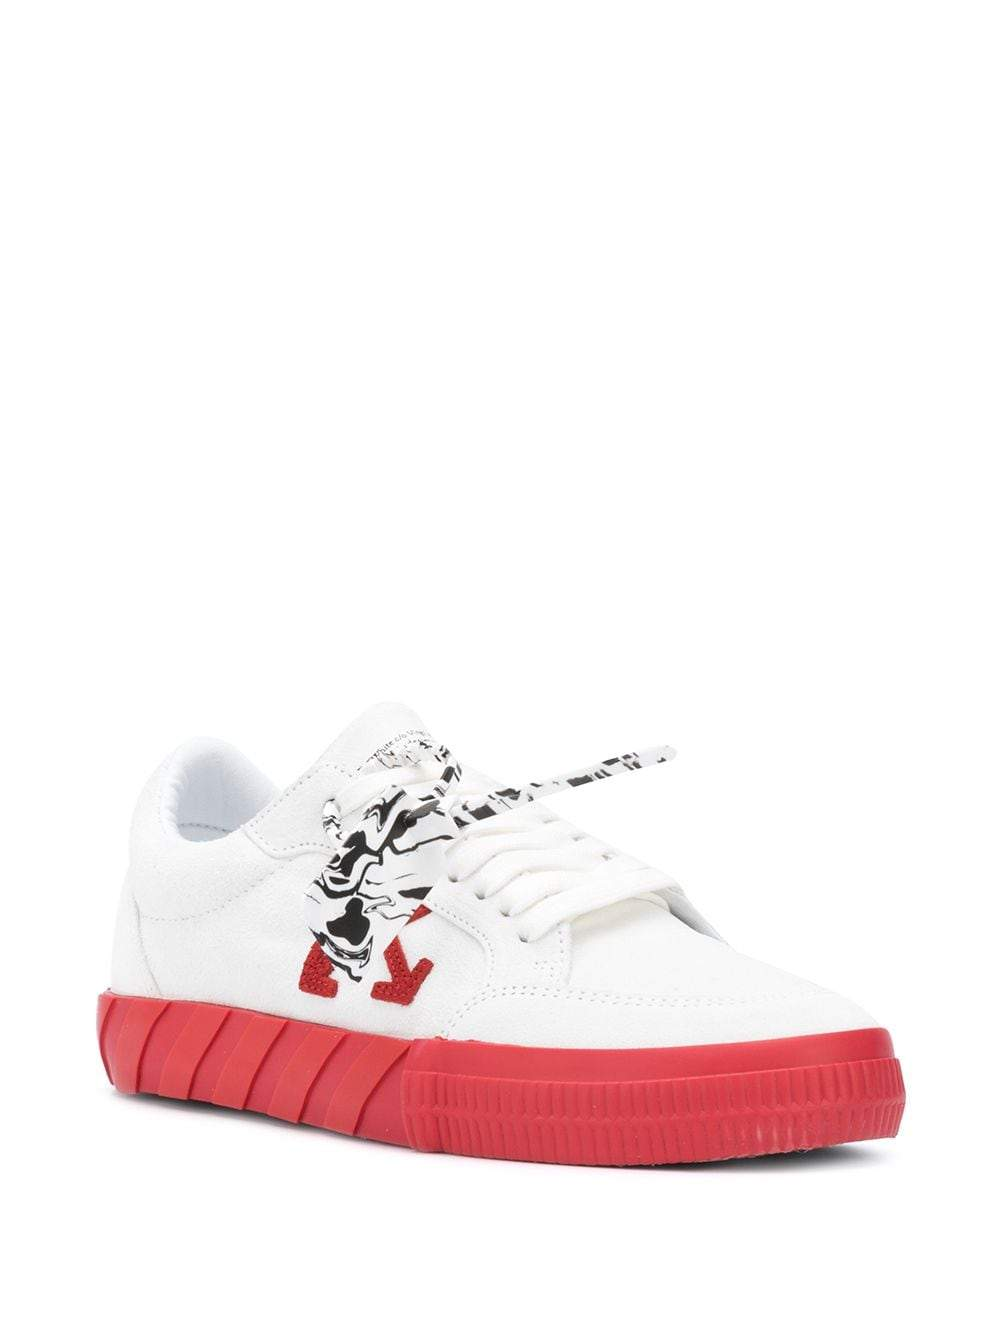 OFF-WHITE Low Vulcanized Sneaker Suede White/Red - Maison De Fashion